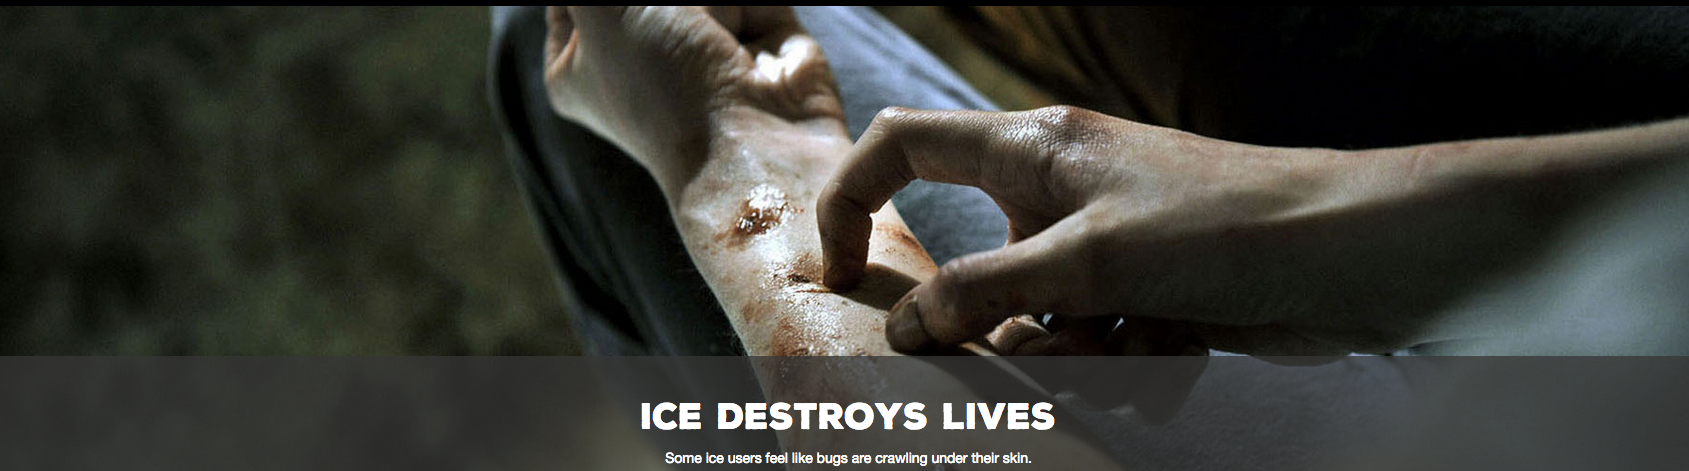 Ice Destroys Lives Campaign